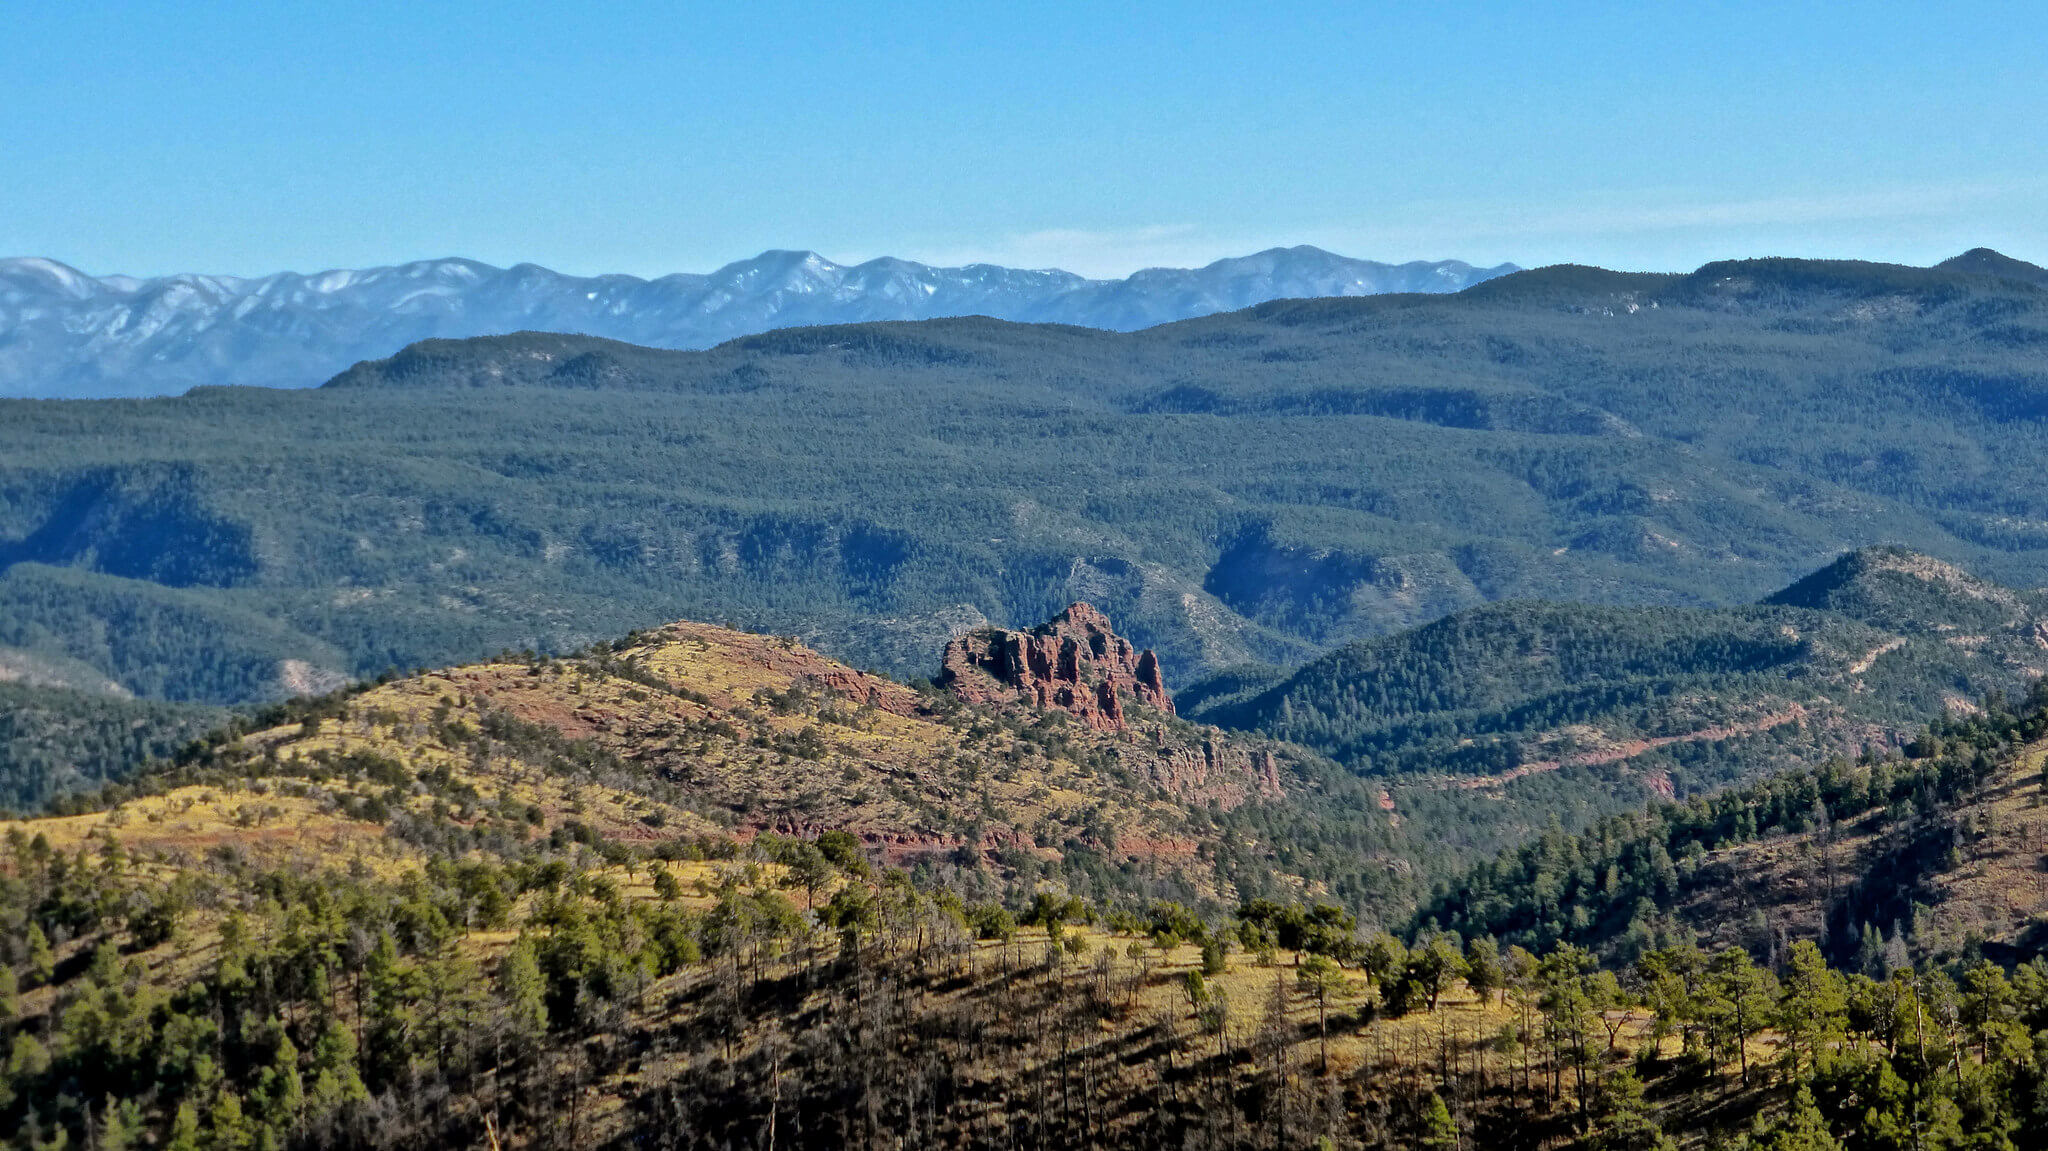 10 Facts About Apache-Sitgreaves National Forest